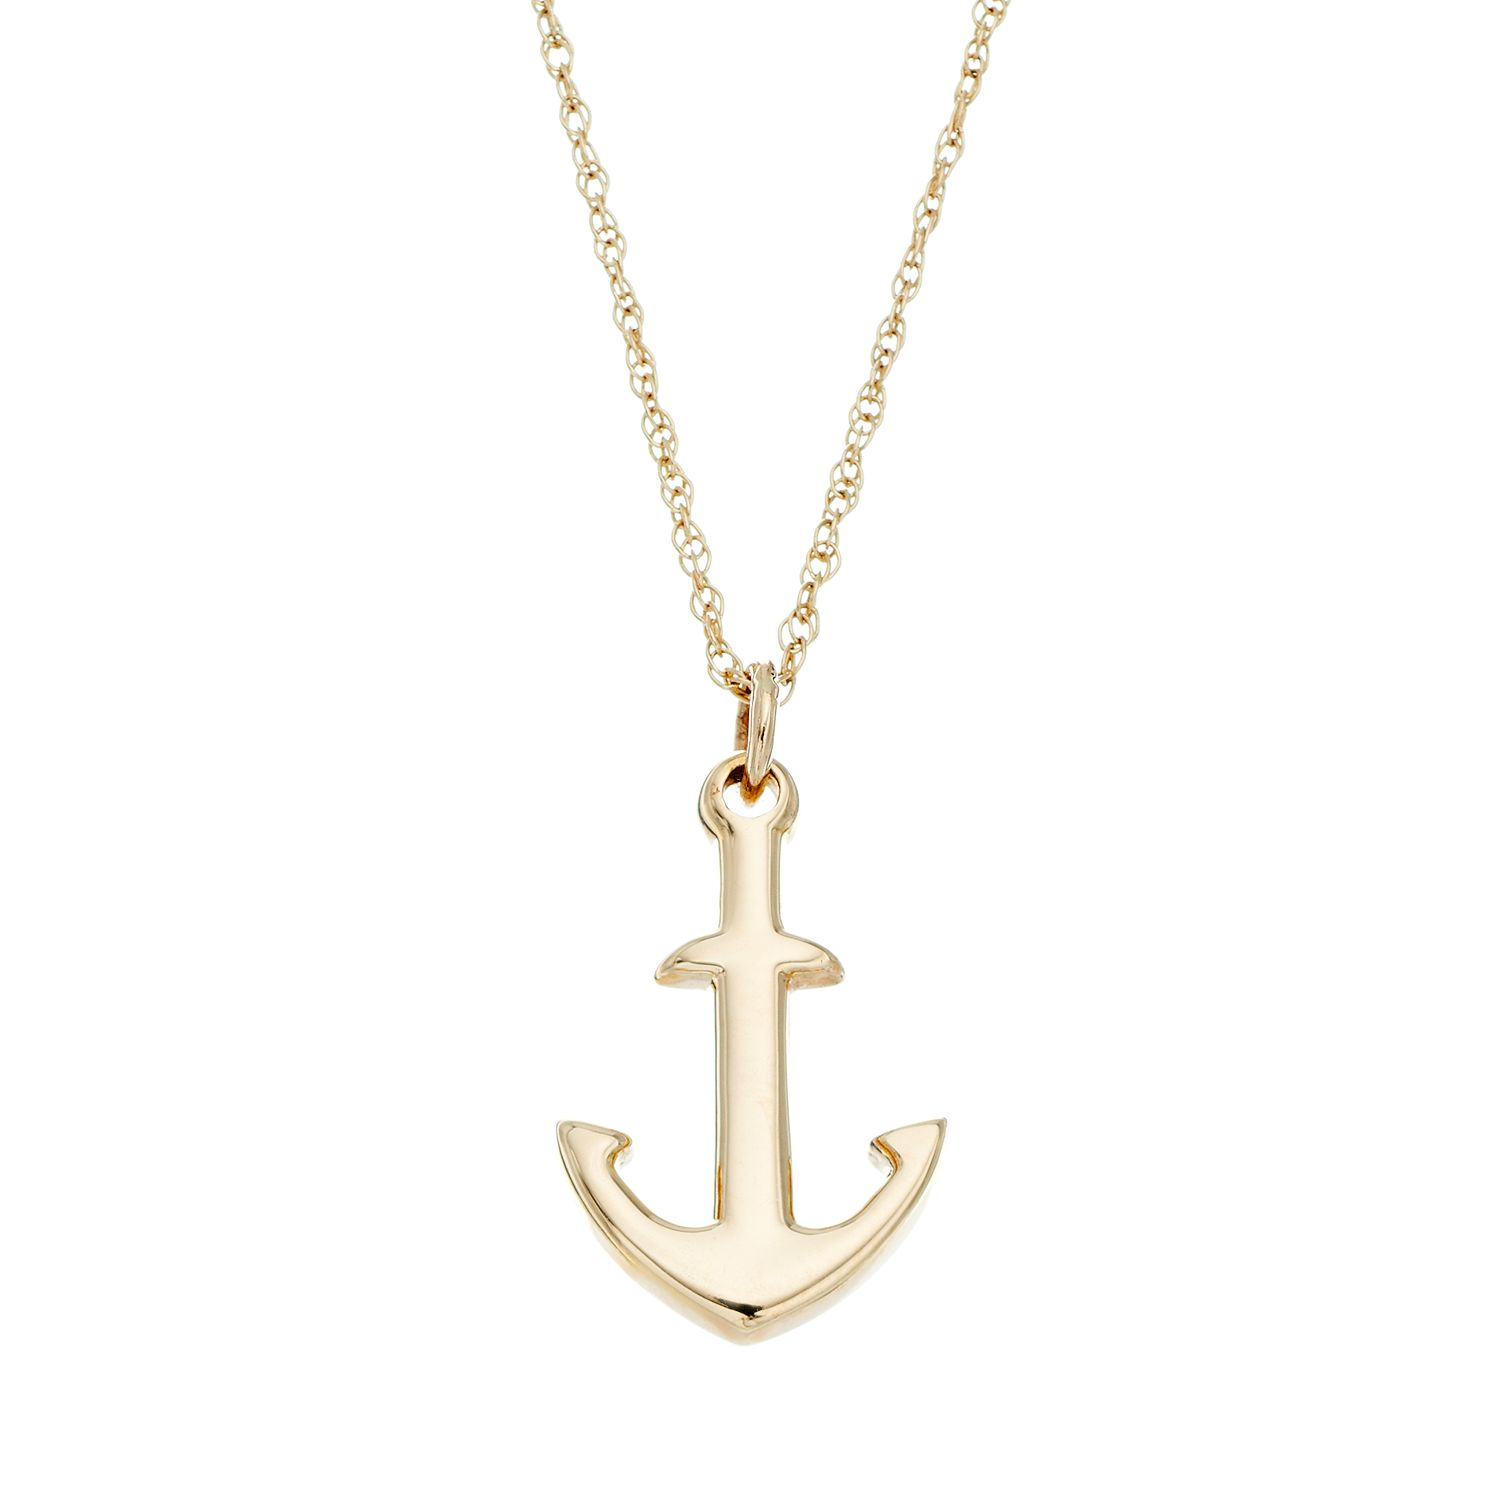 Itsy Bitsy 10k Gold Anchor Pendant Necklace